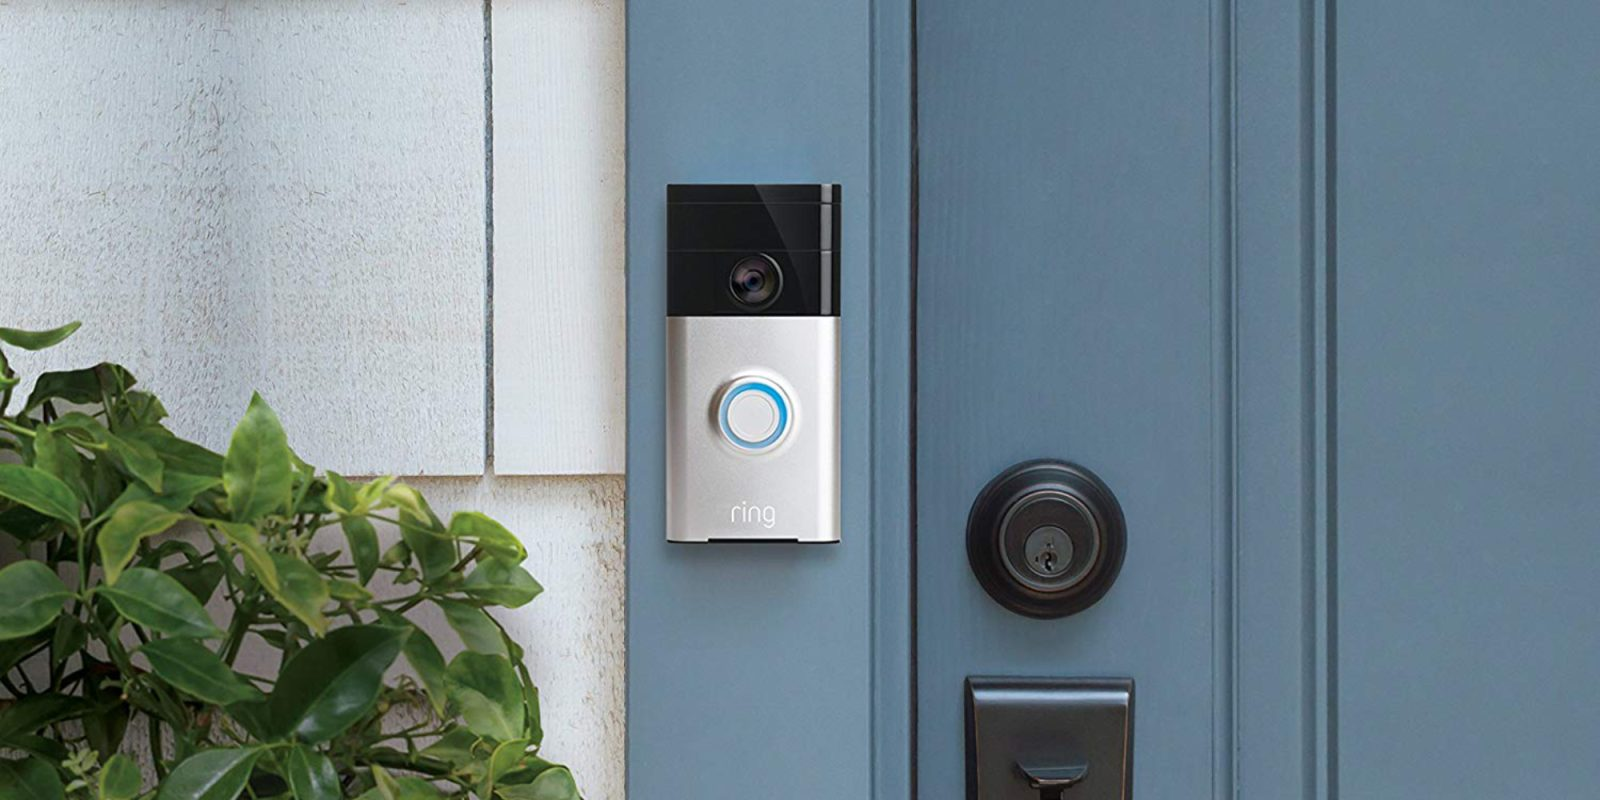 Curb package theft with one of these Ring Video Doorbells priced from $66